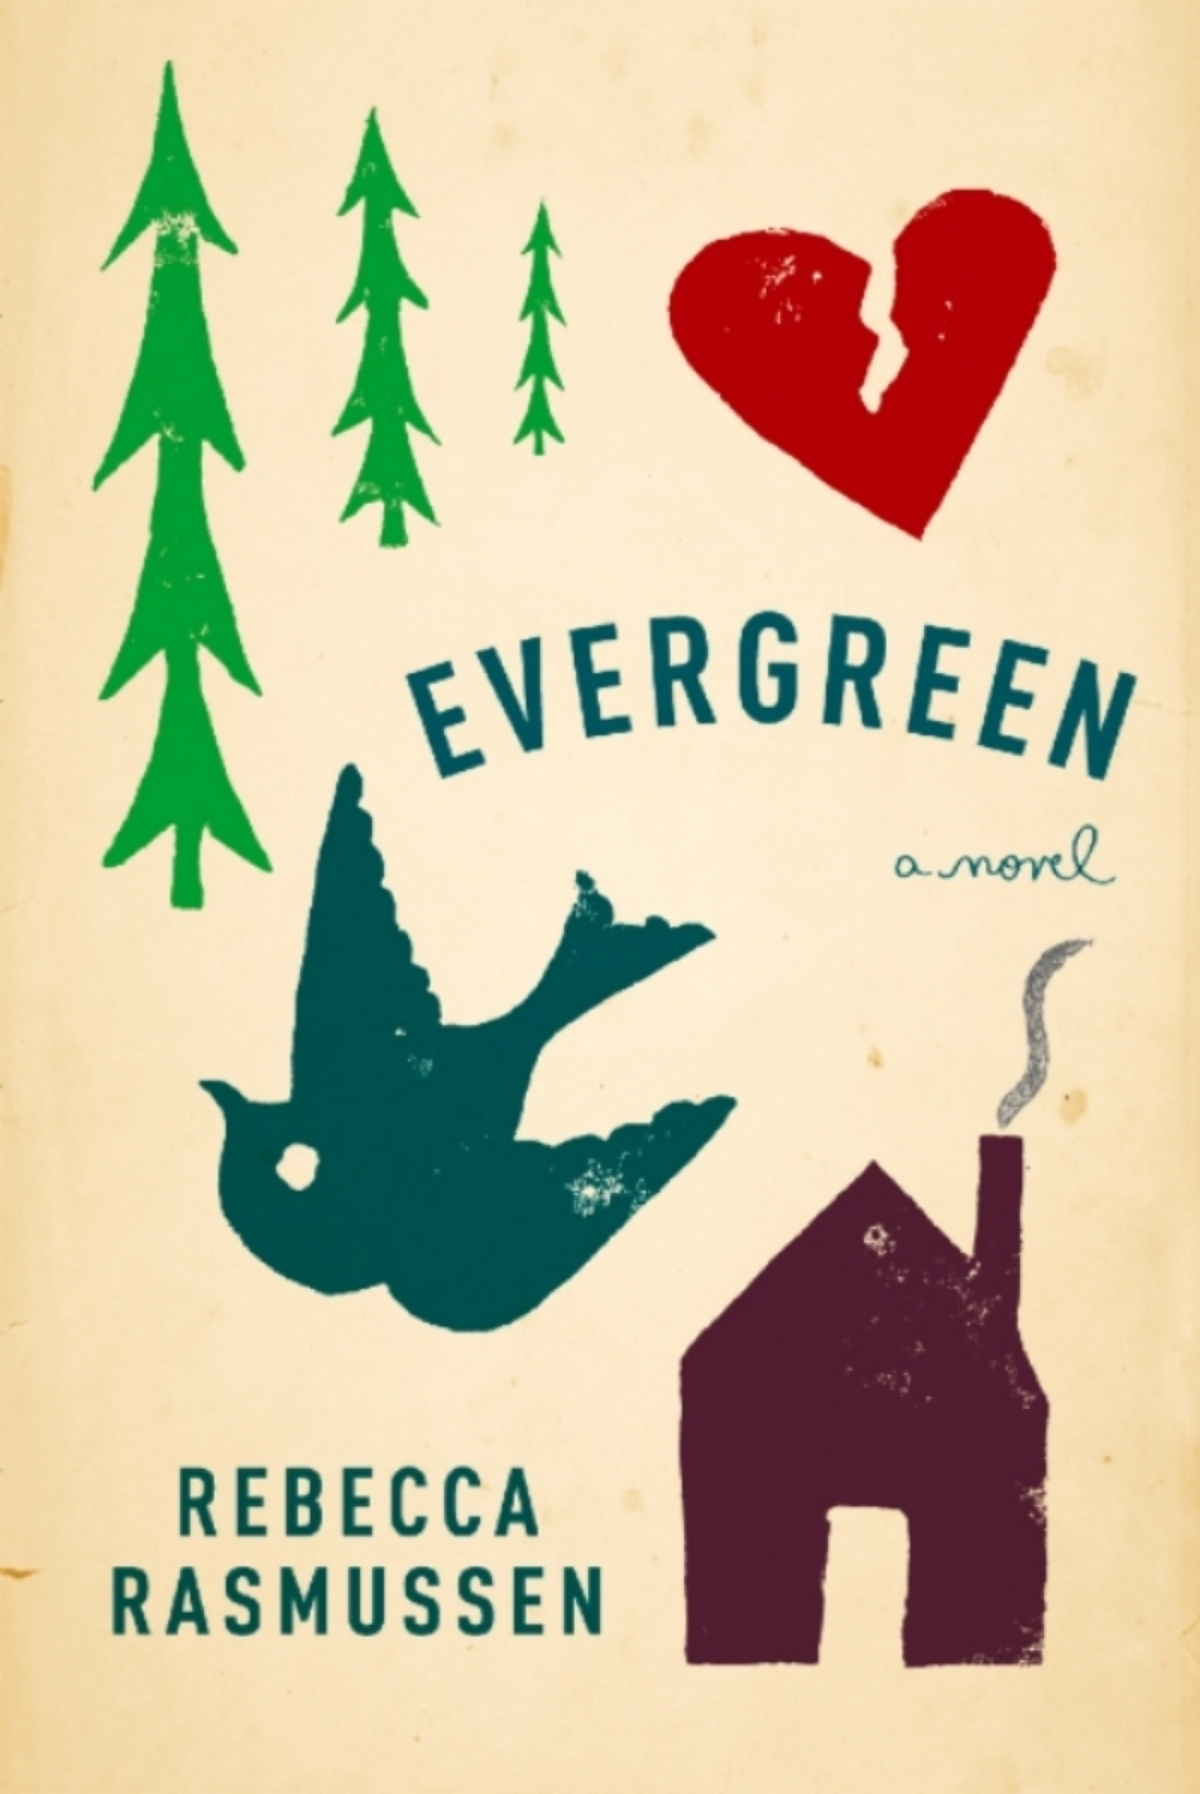 Evergreencover.jpg